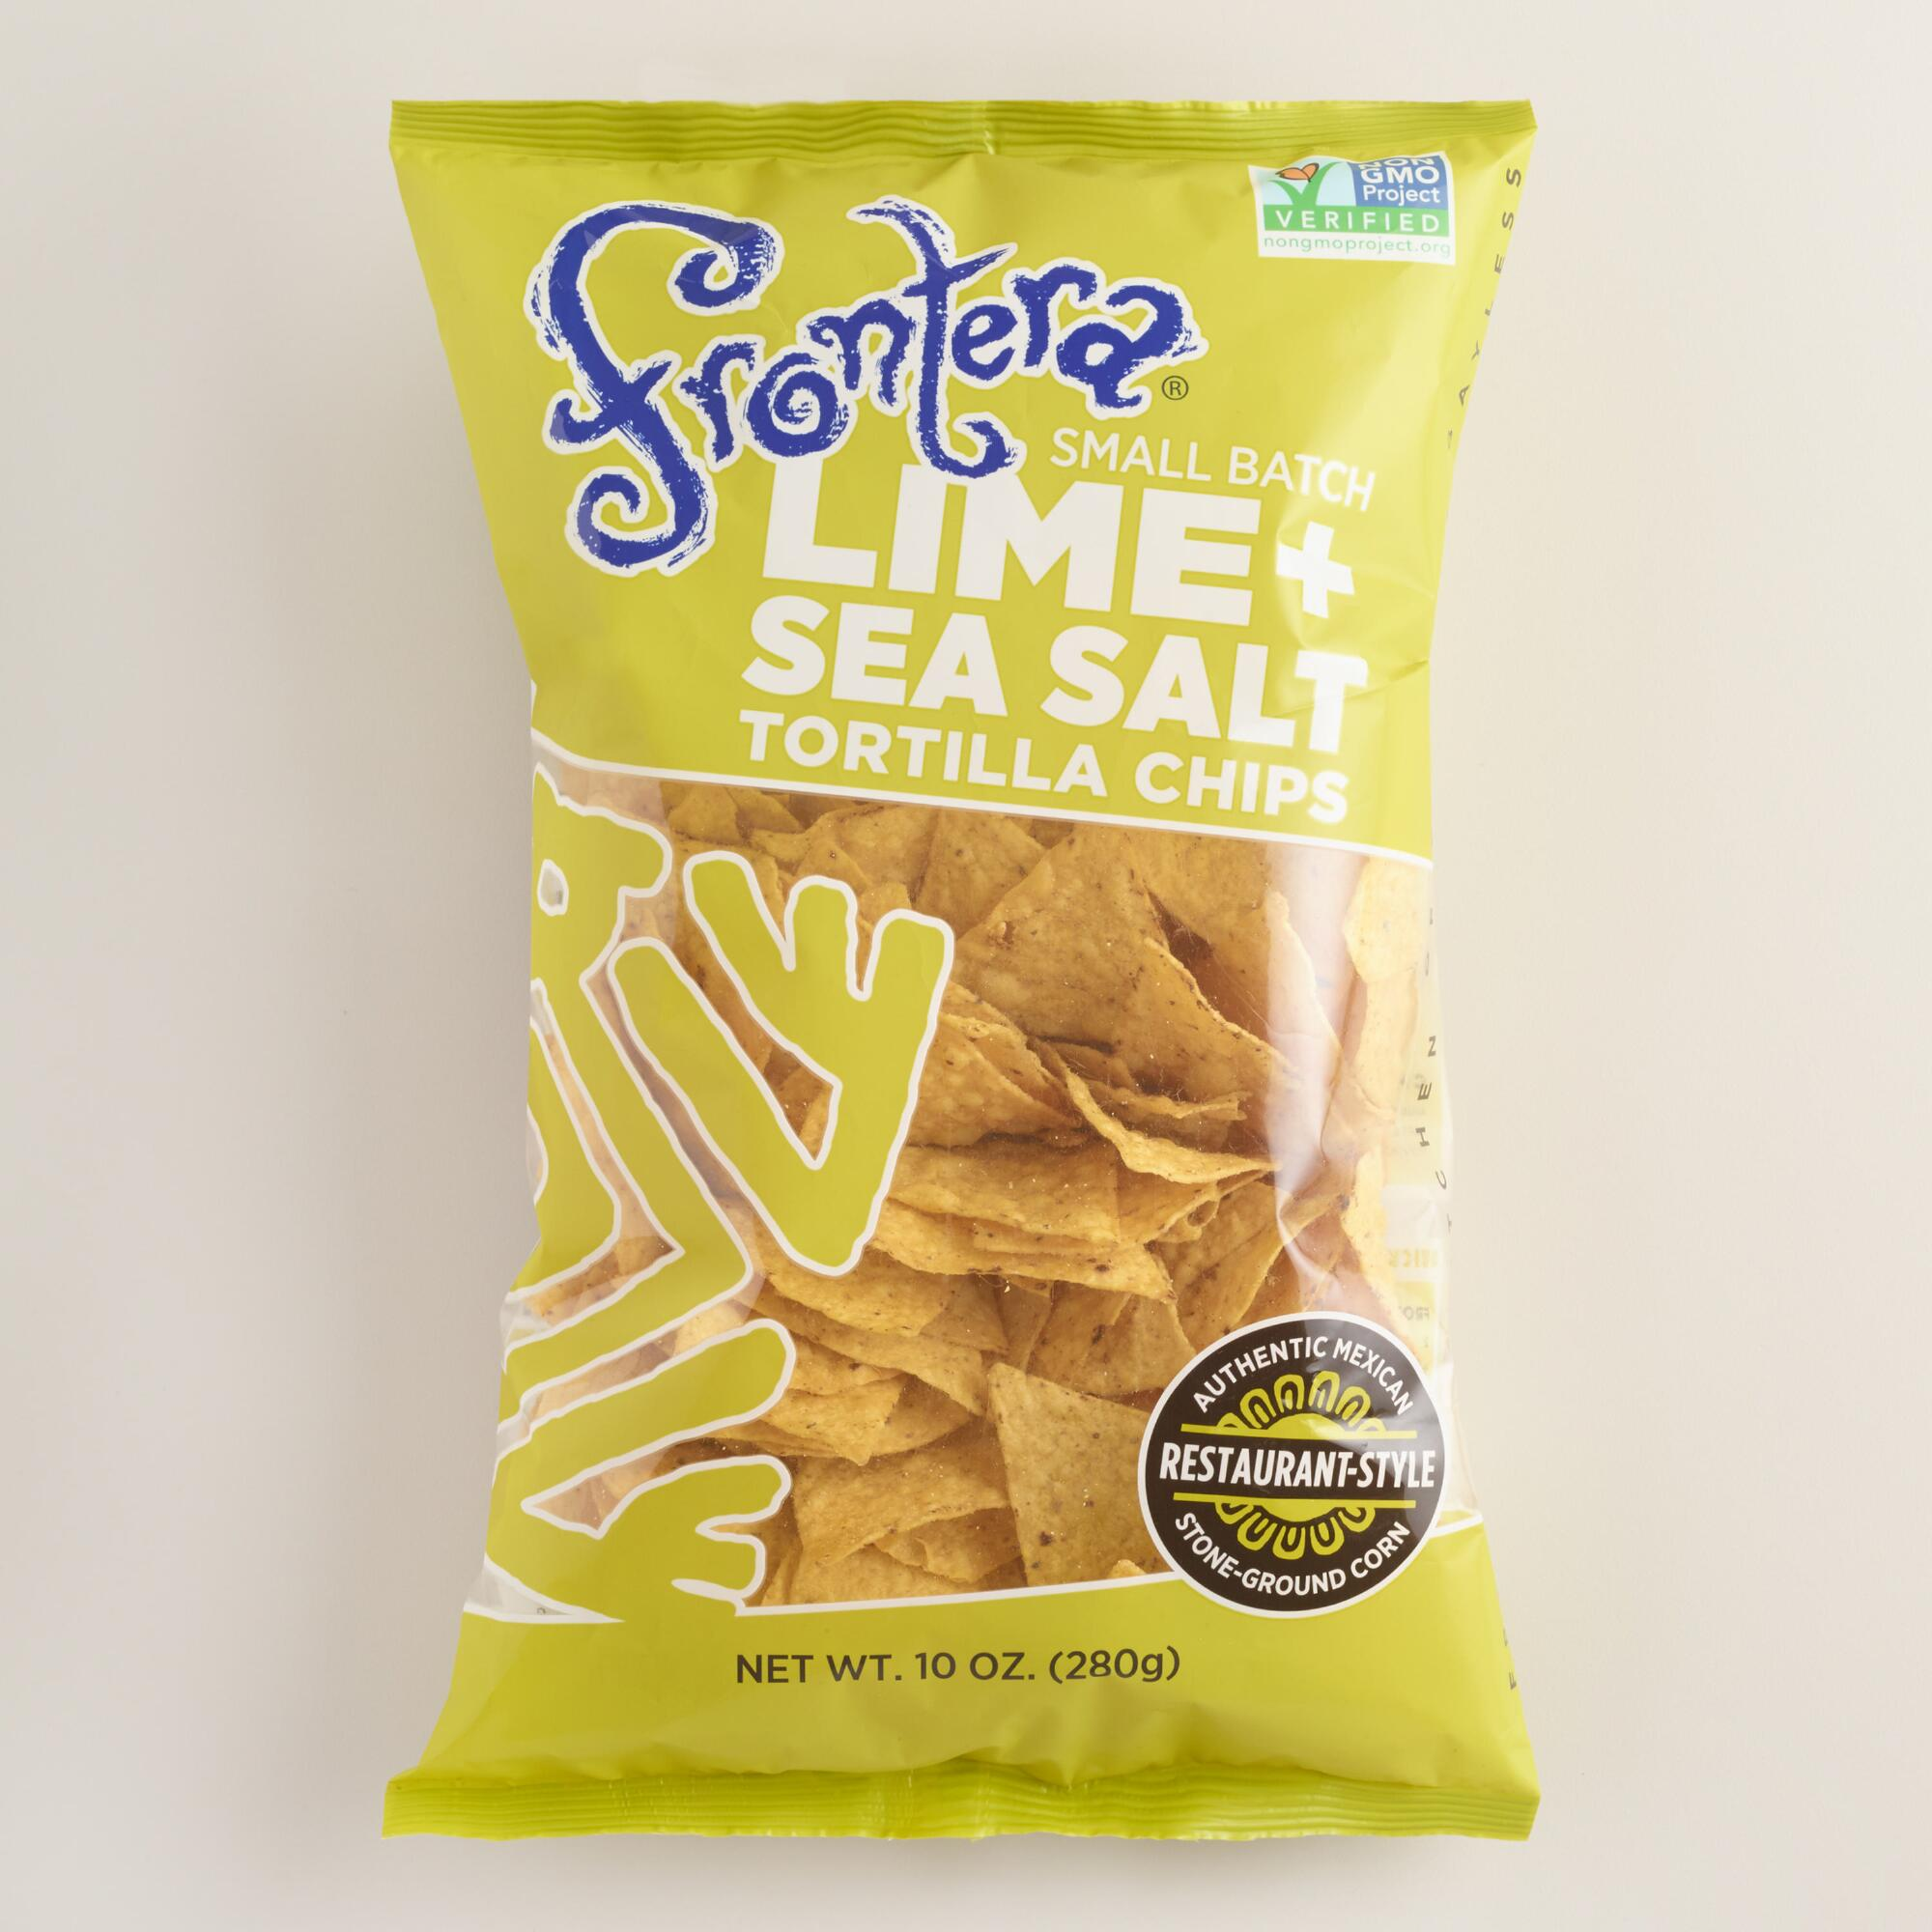 World Market Lately: Frontera Lime Sea Salt Tortilla Chips